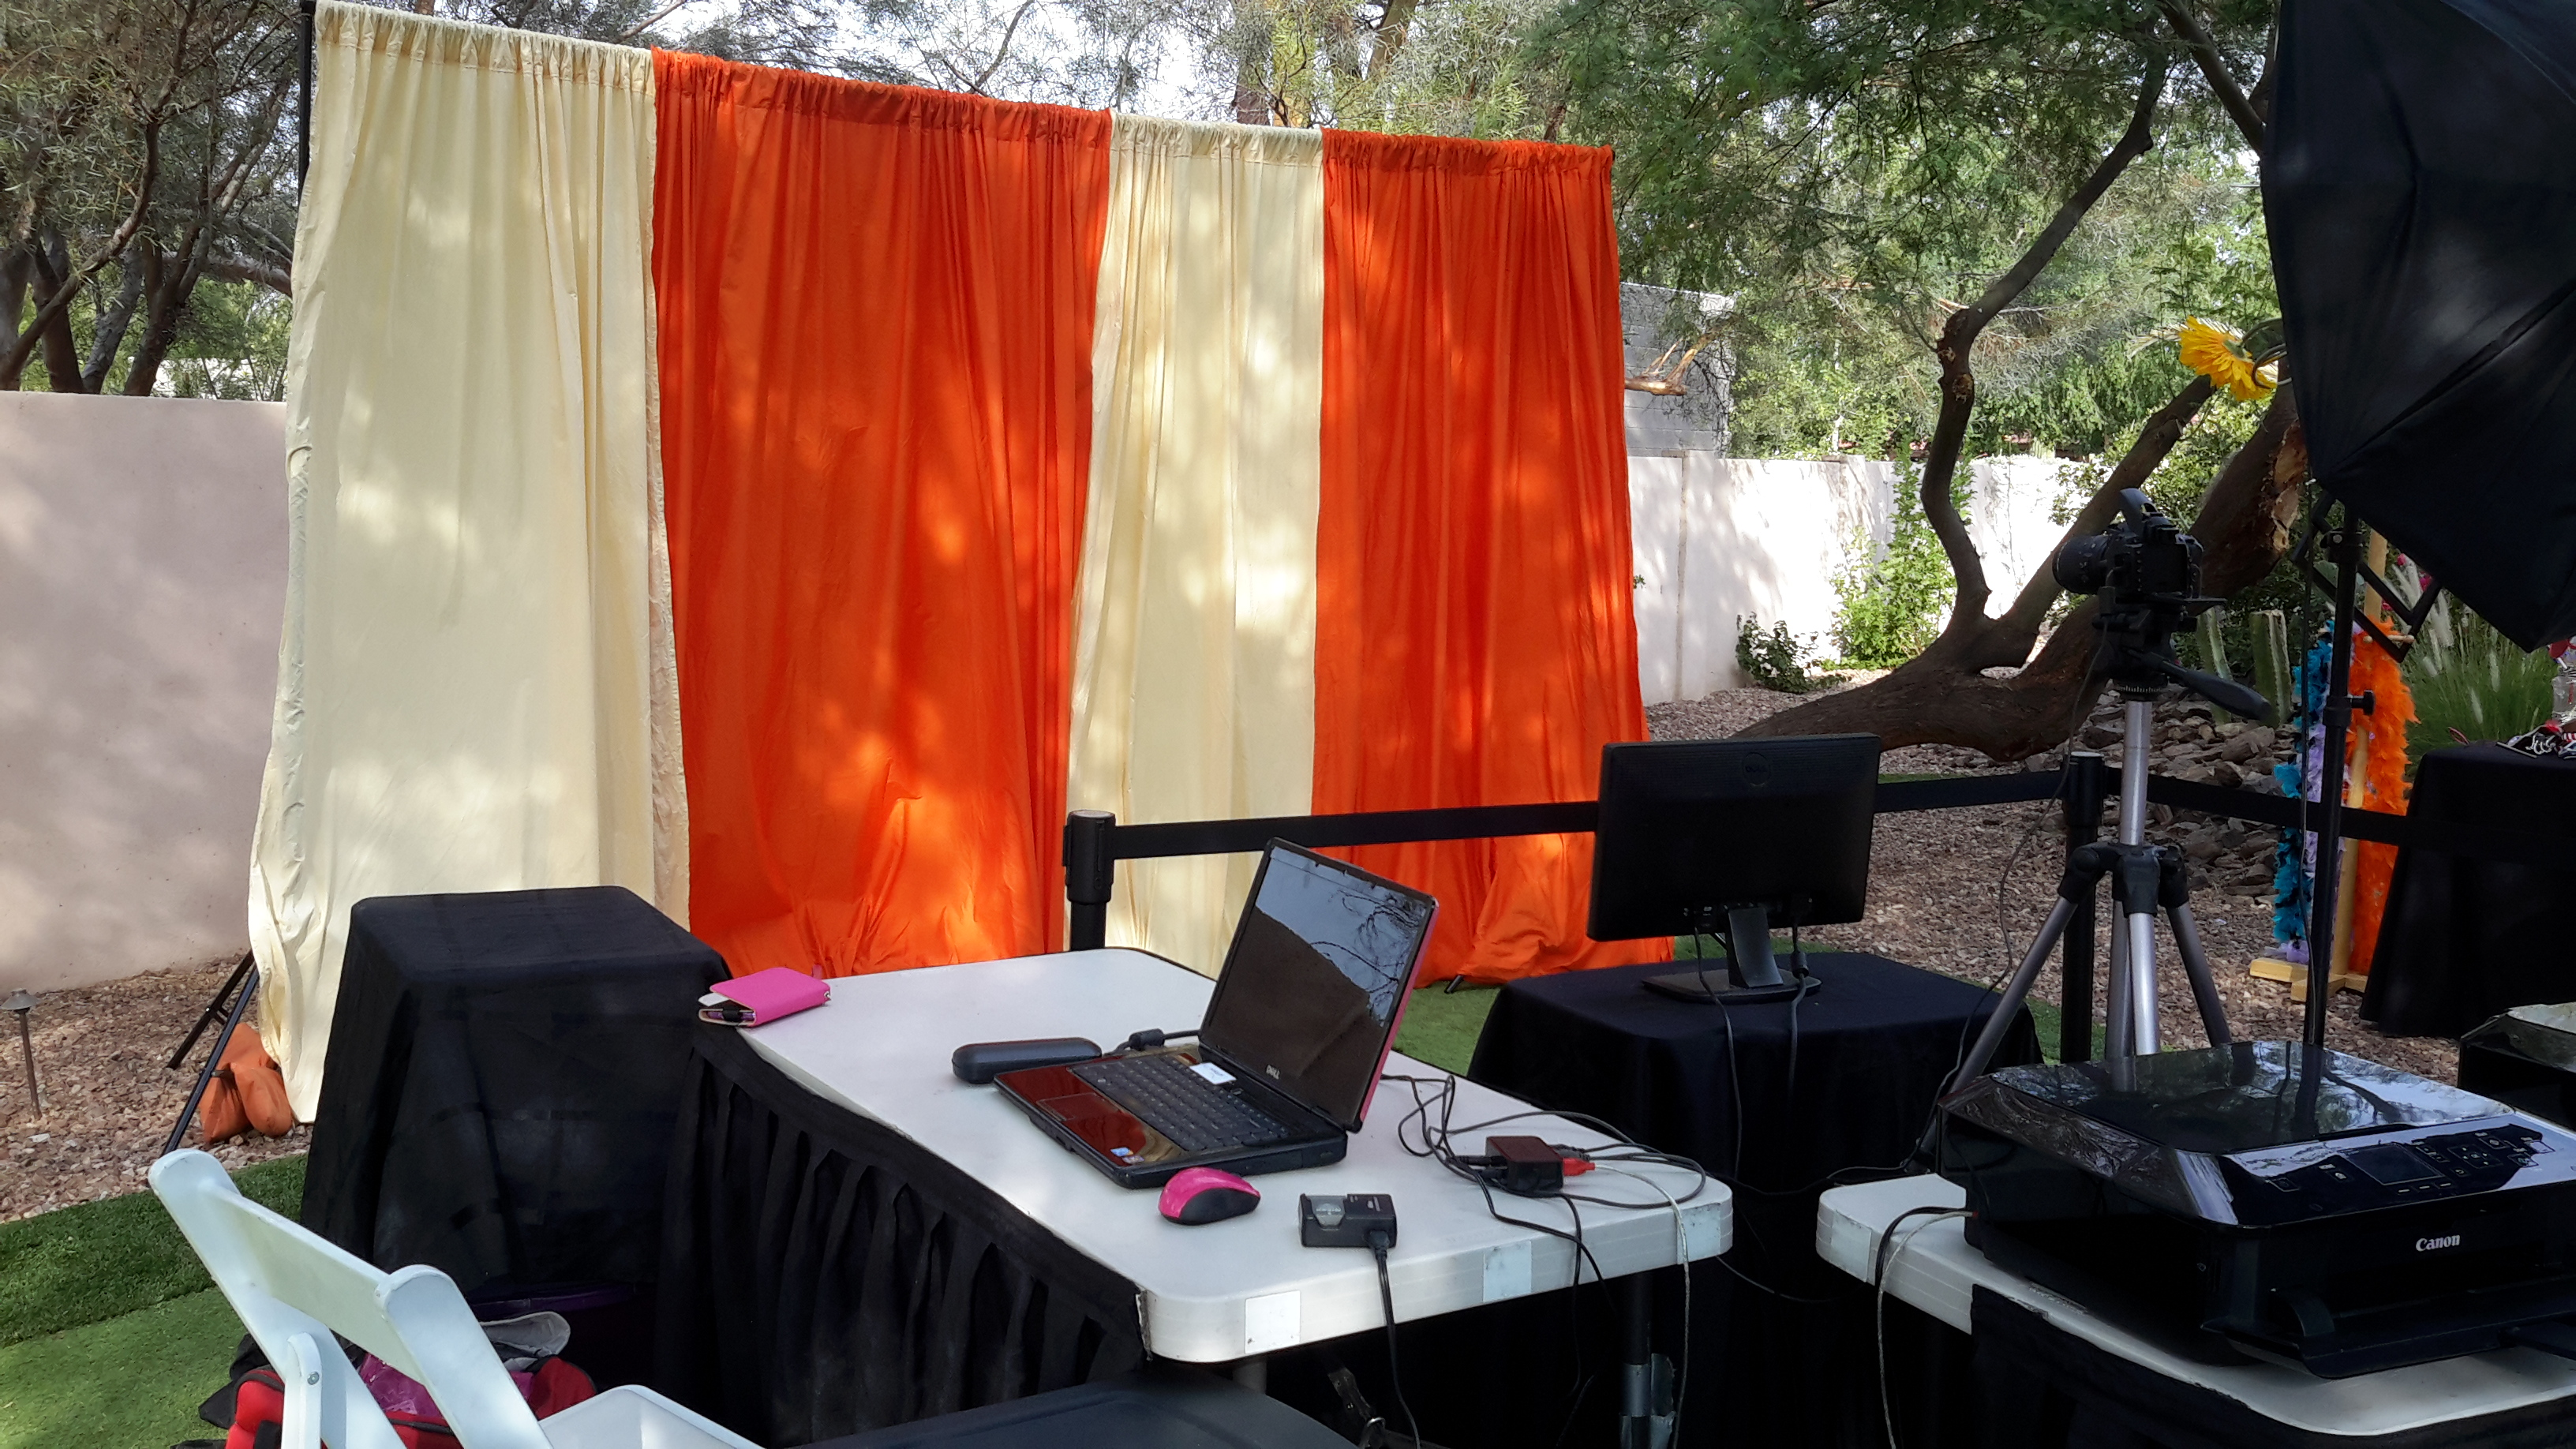 Prom/Graduation | Digital Expressions Photo Booth Rental